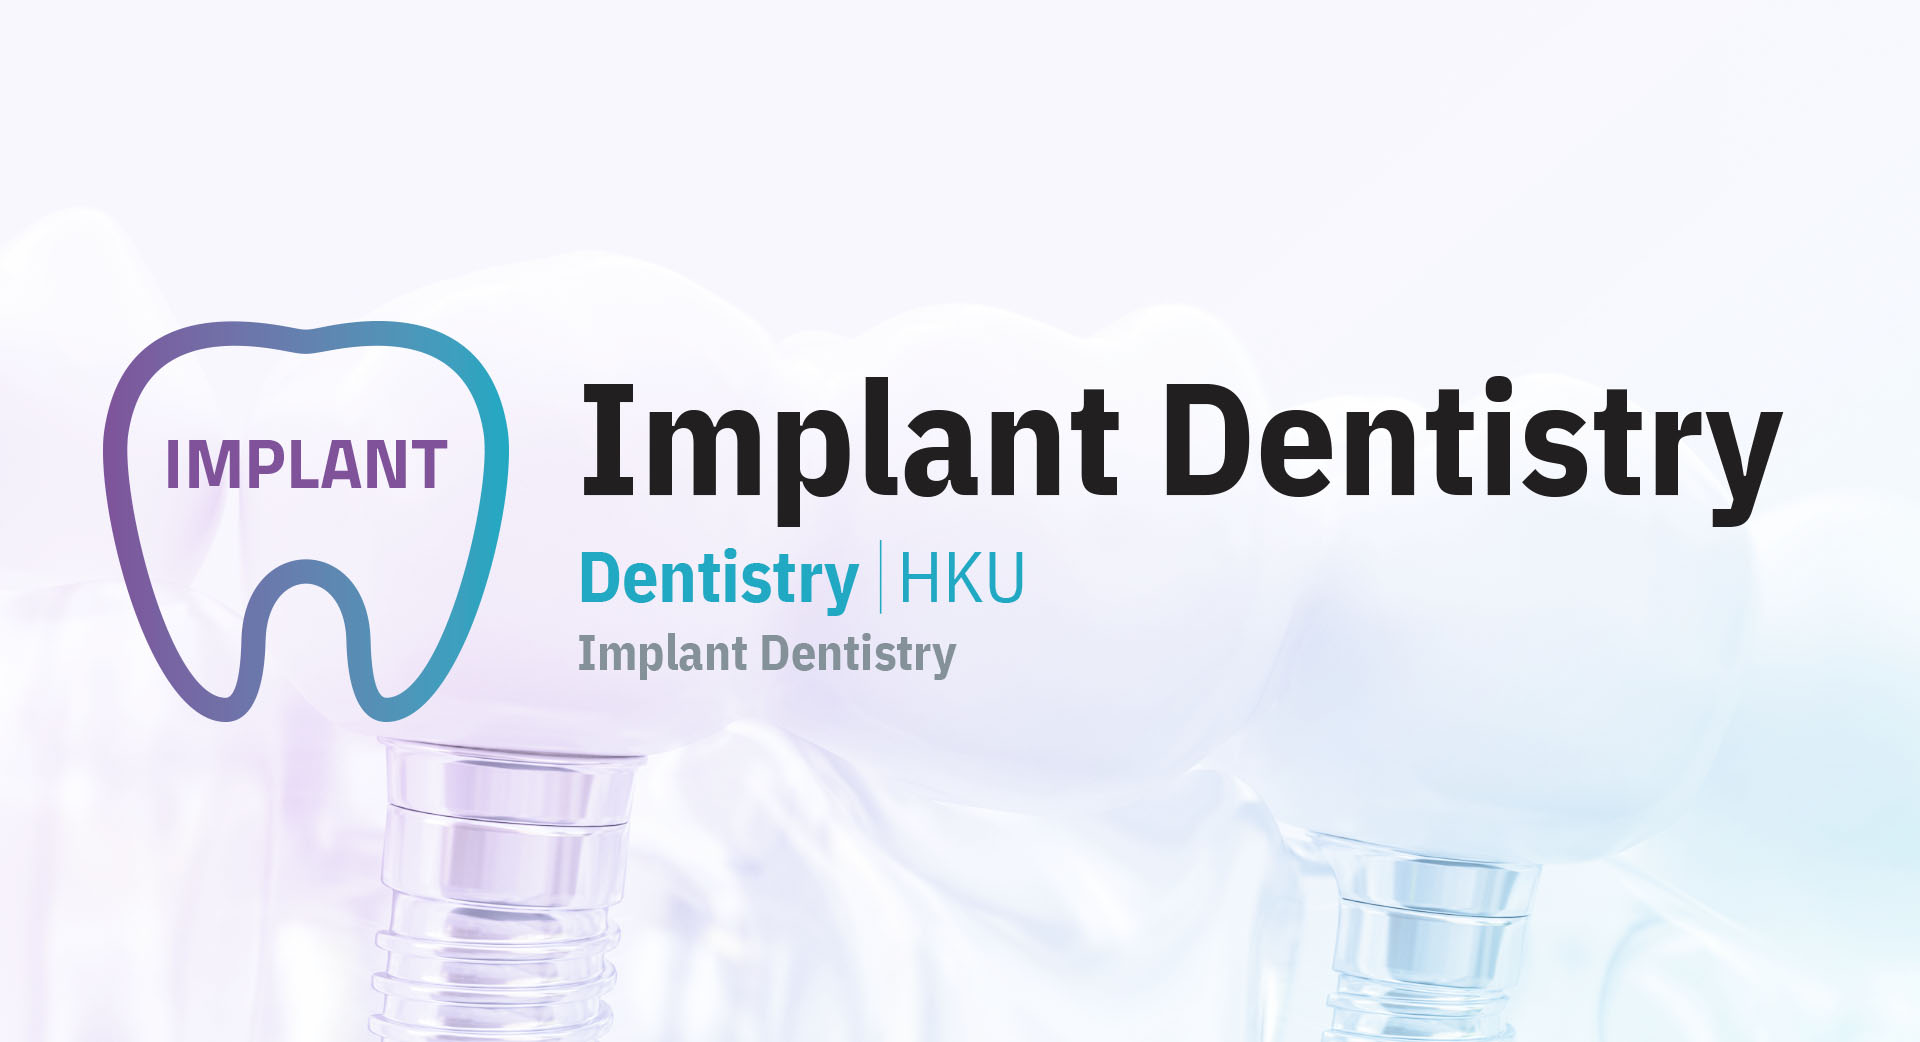 implant-tl-course-image